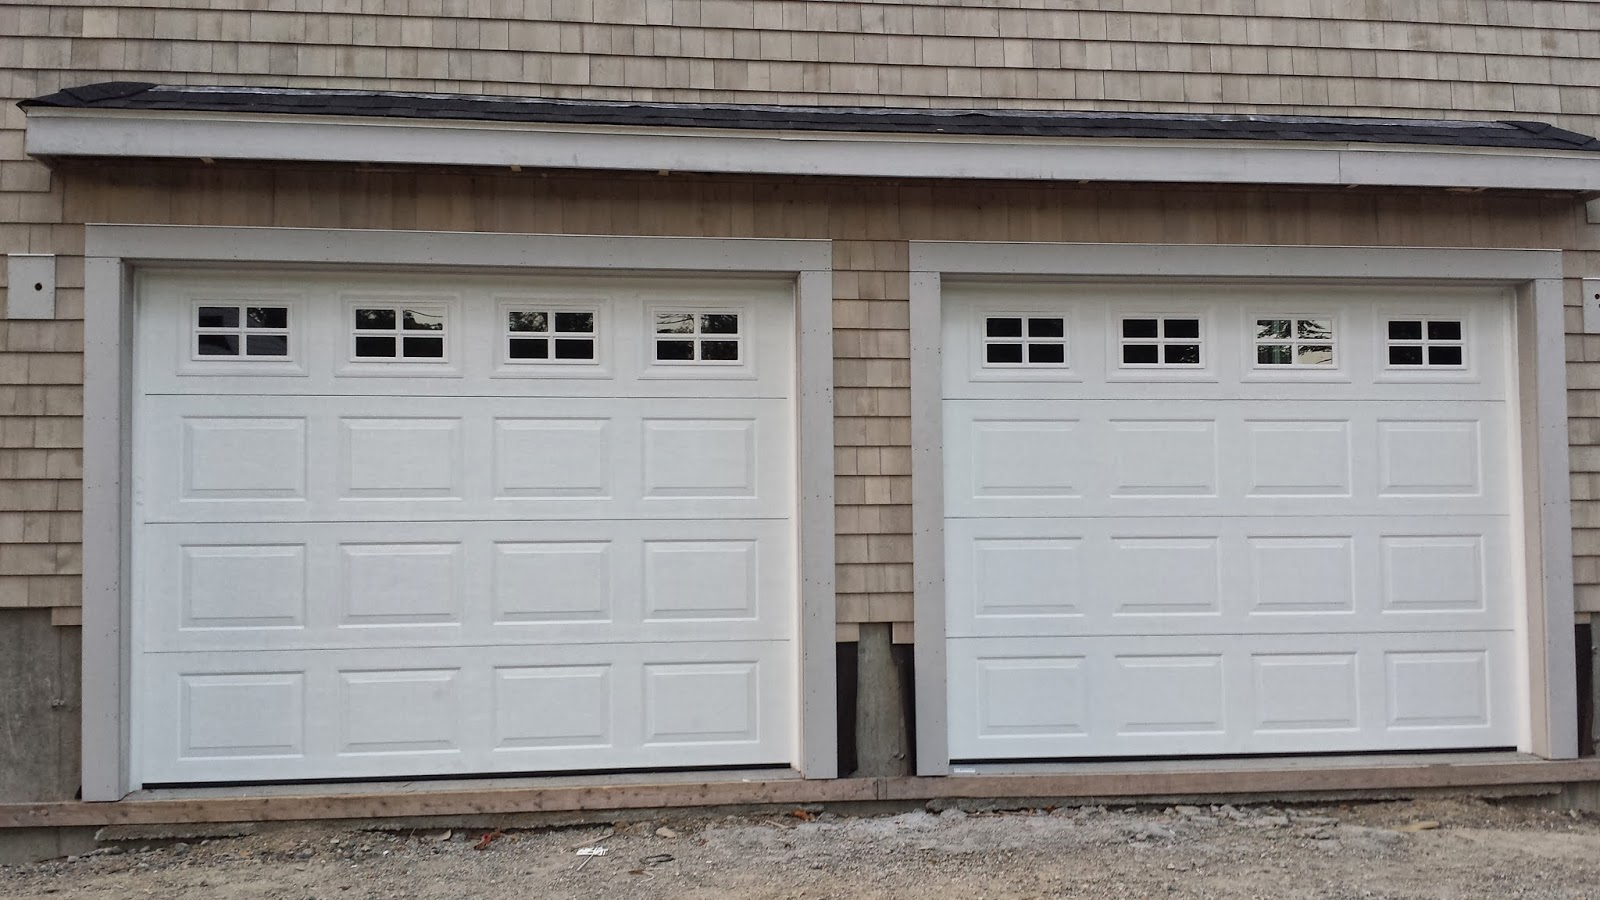 900 #5A4F45 The Impatient Home Builder: Vent Fans & Garage Doors image Overhead Doors Direct 38431600